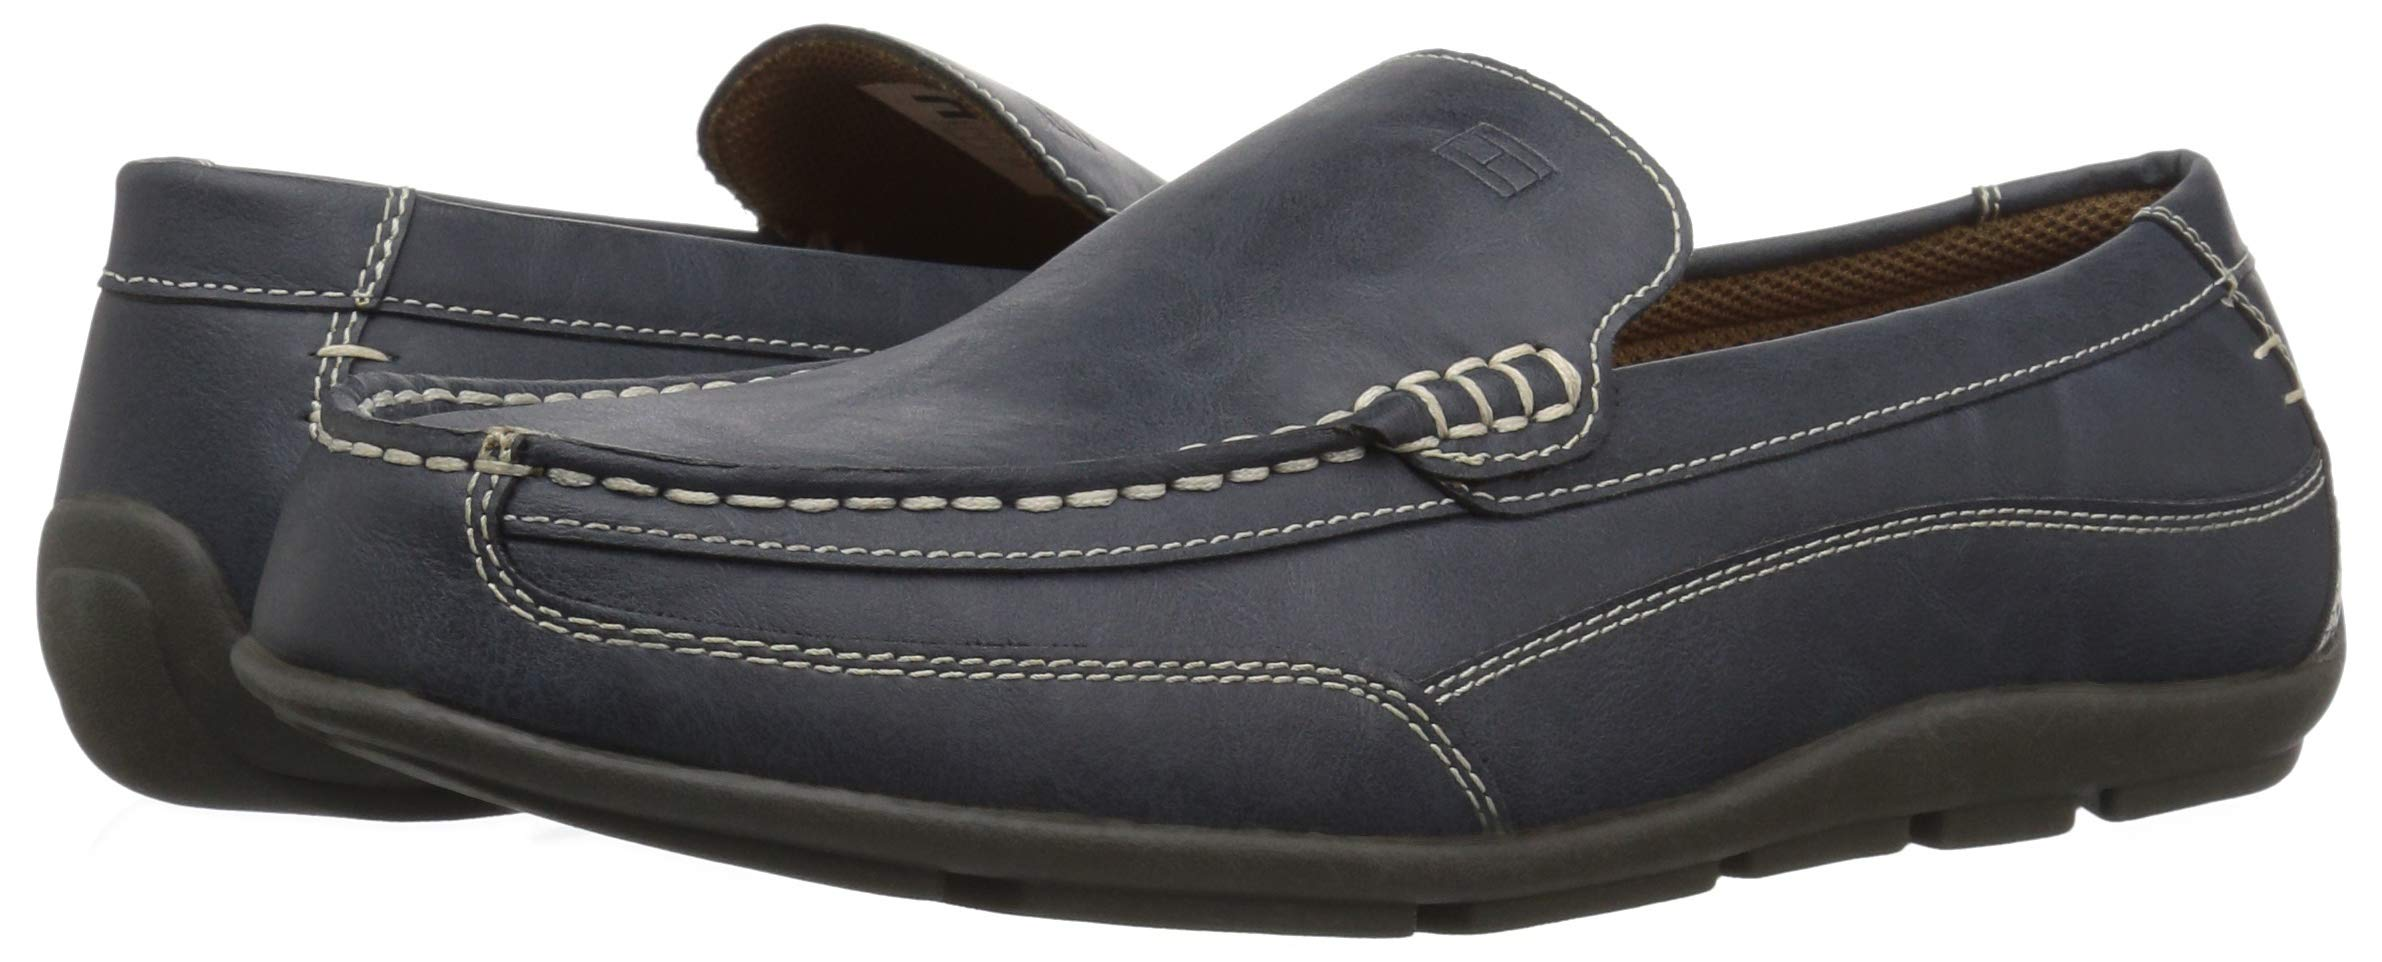 Tommy Hilfiger Men's DATHAN Shoe, navy, 11.5 Medium US by Tommy Hilfiger (Image #6)